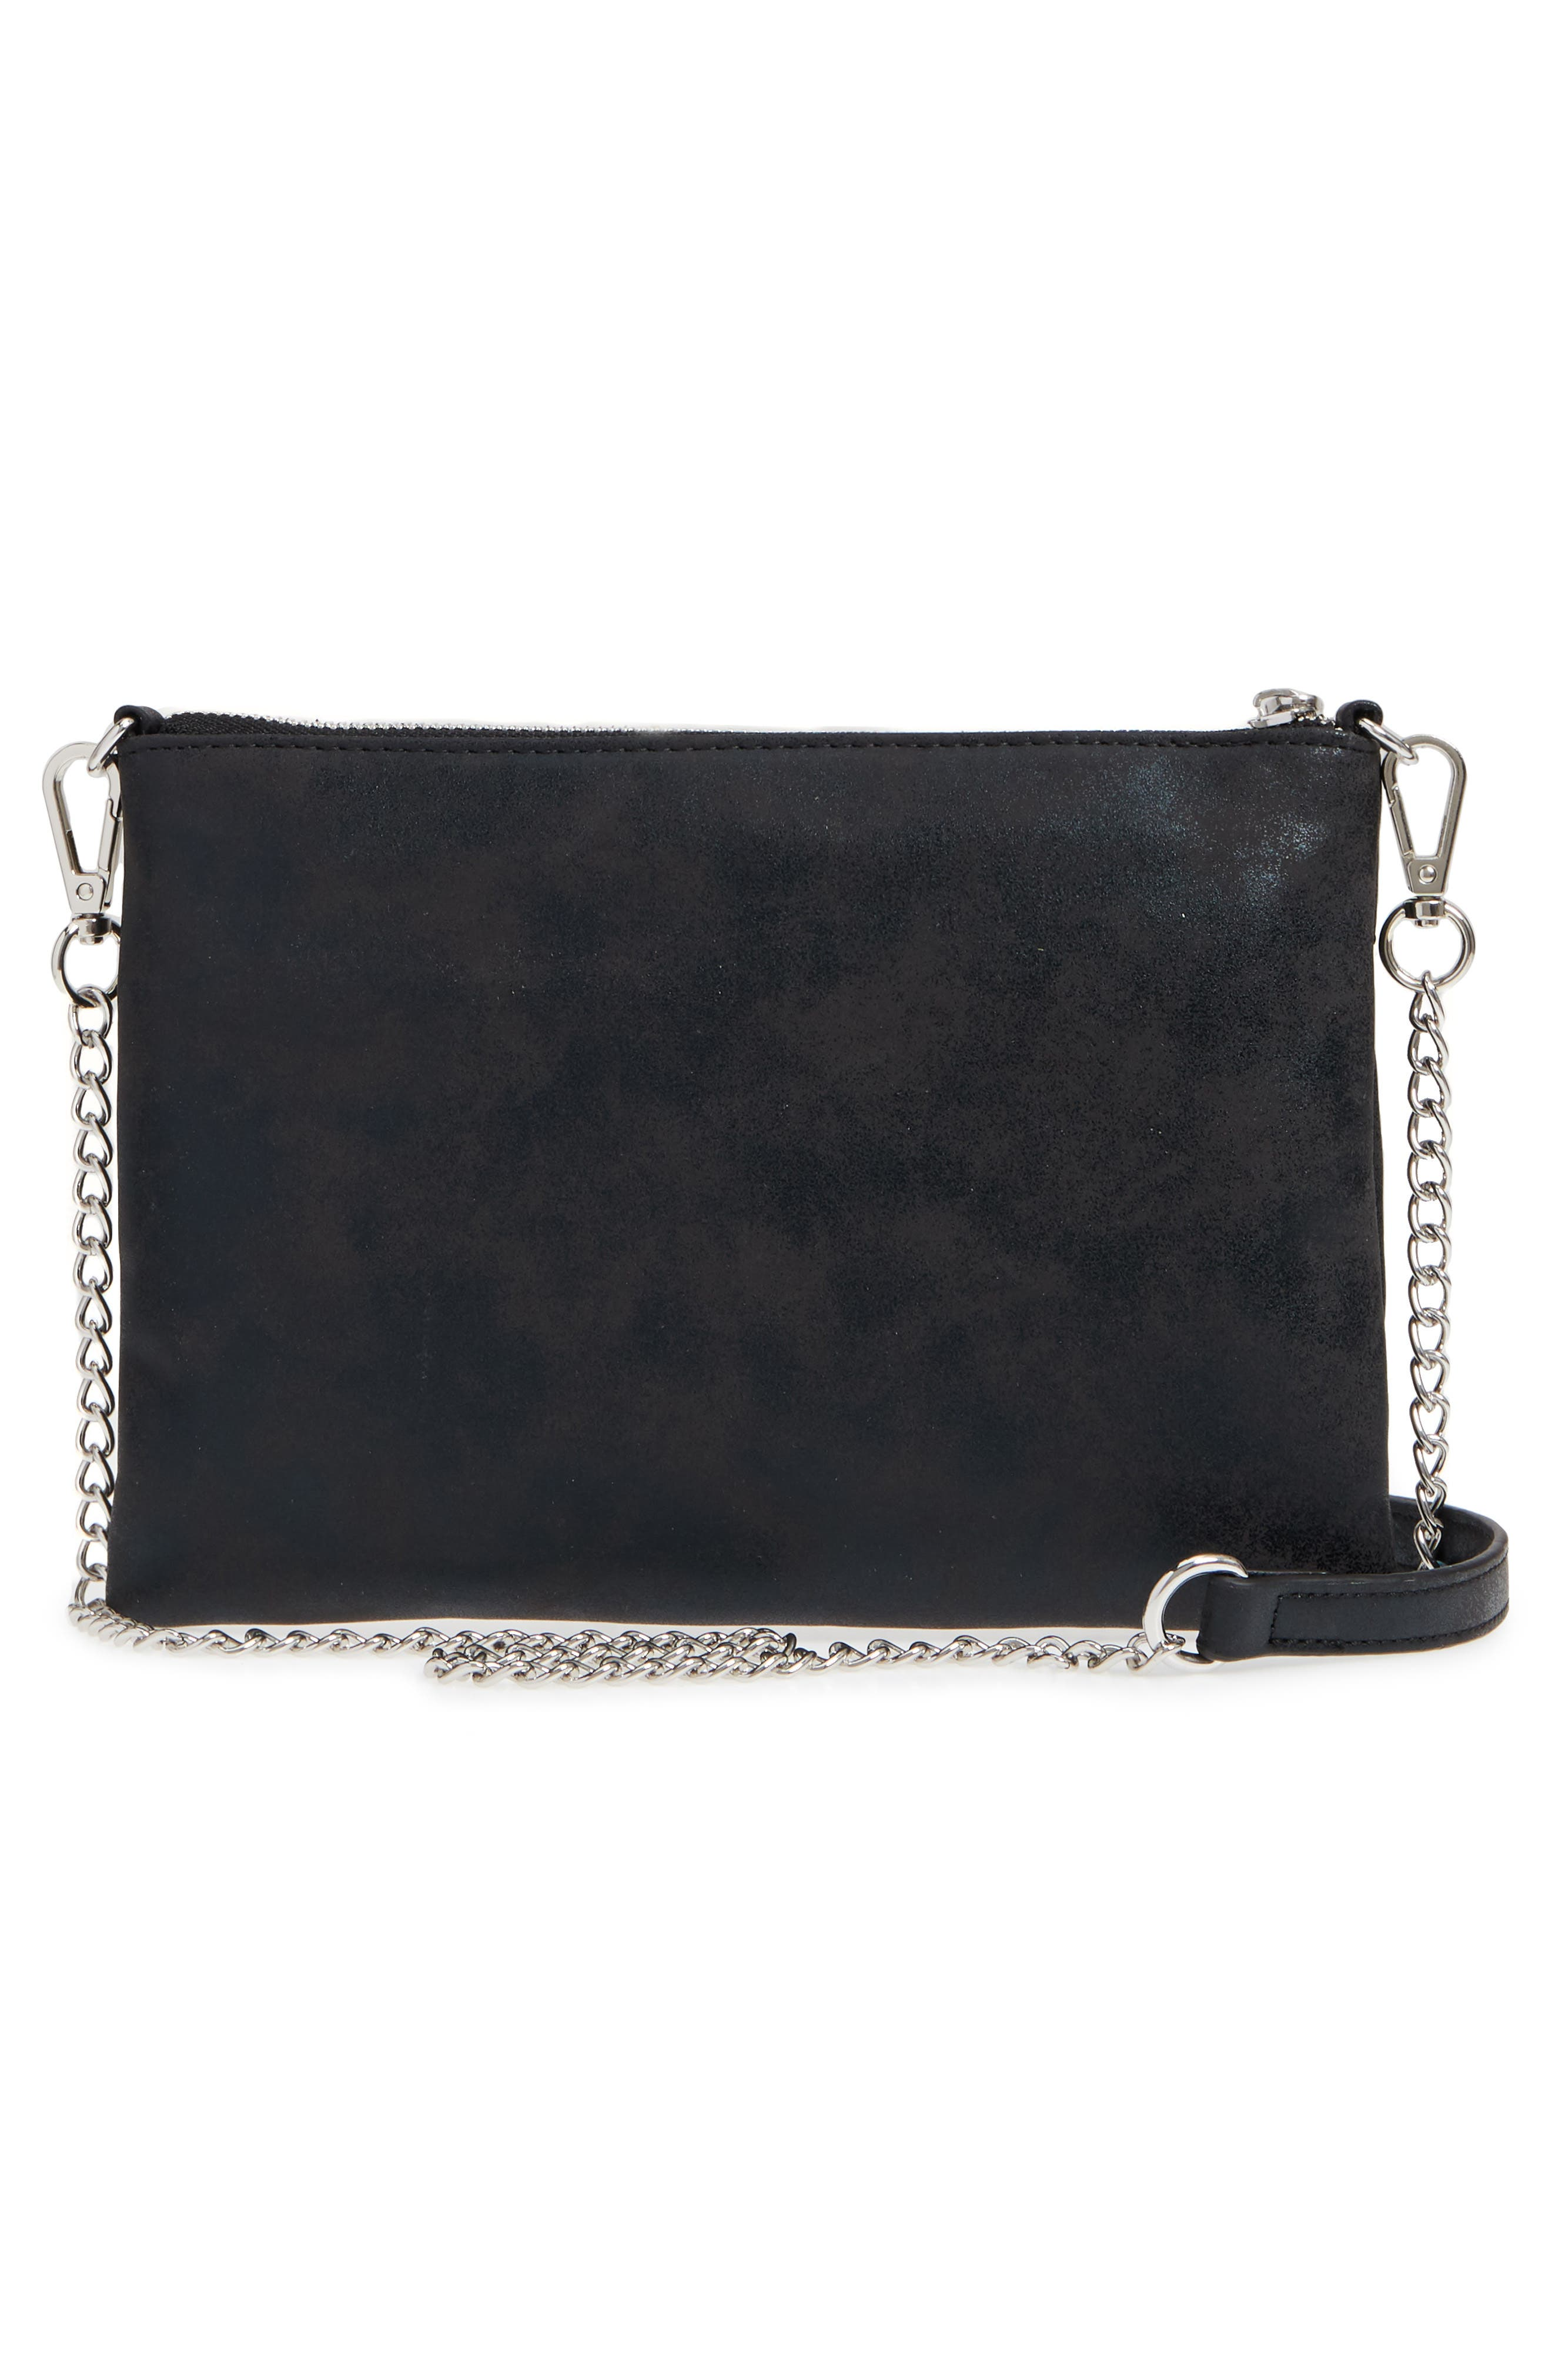 Astley Faux Leather Clutch,                             Alternate thumbnail 7, color,                             Black